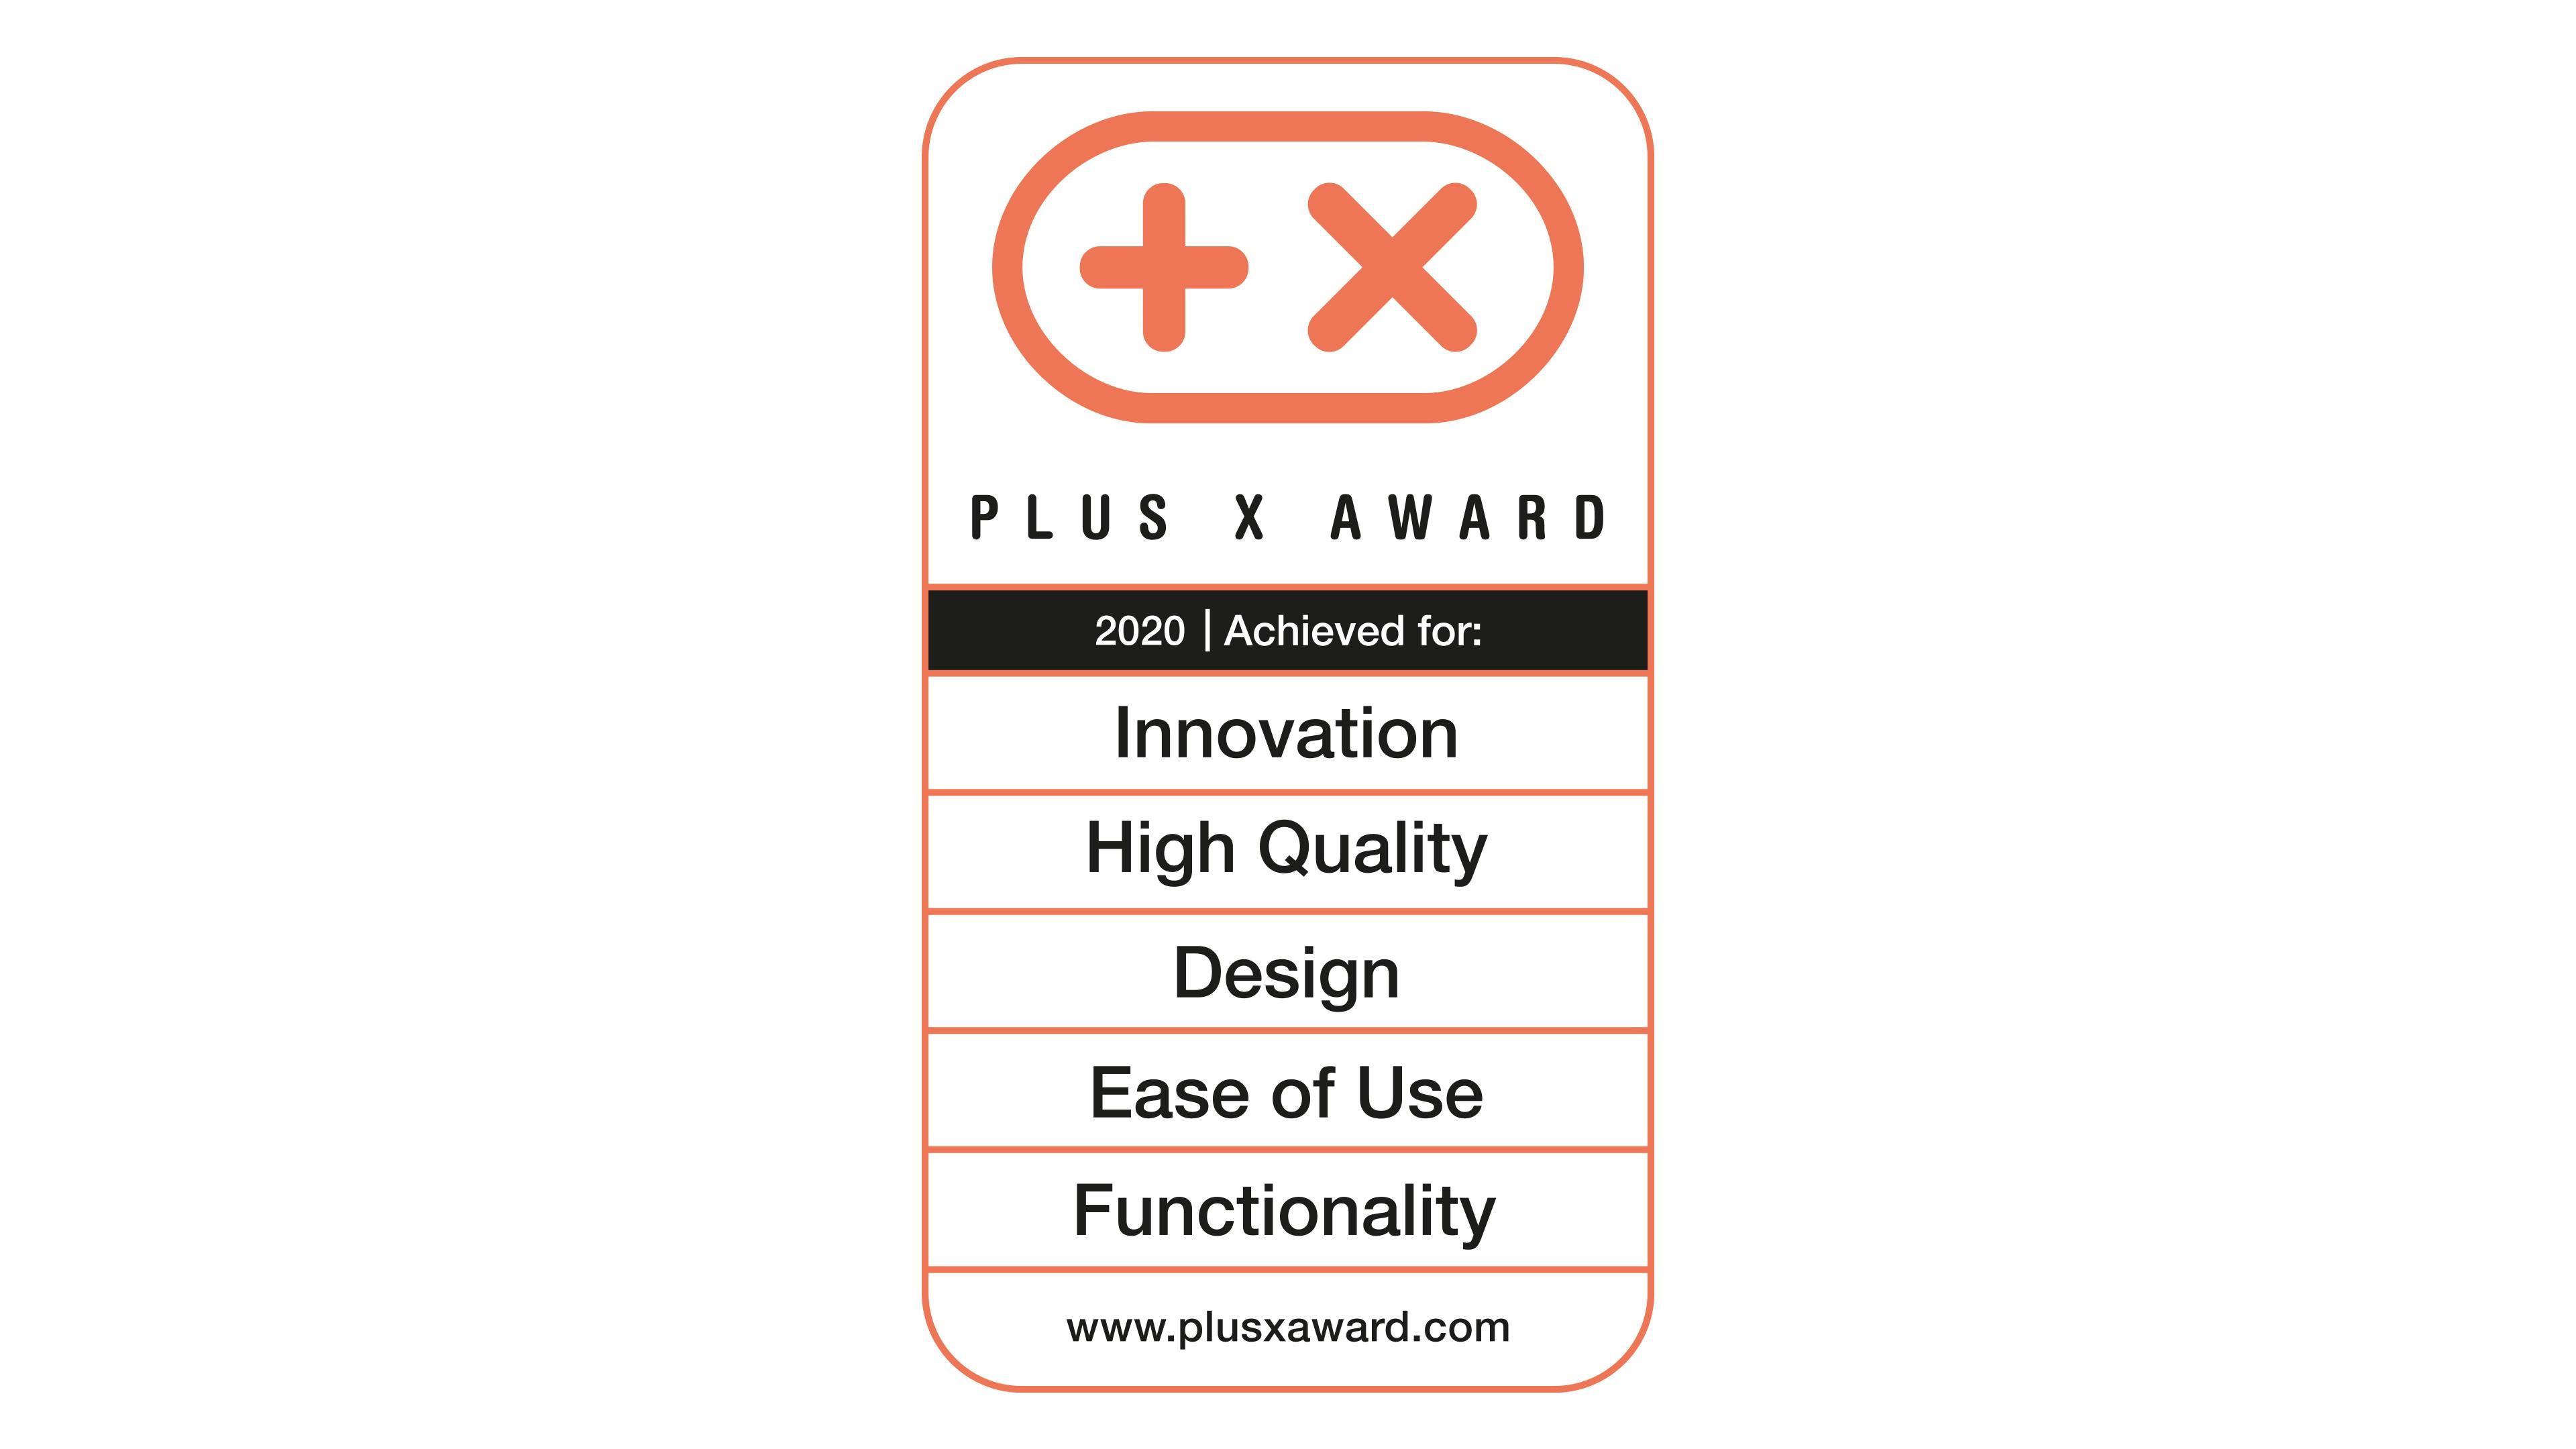 Award_Plus_X_Award_2020_EN_thumb.jpg